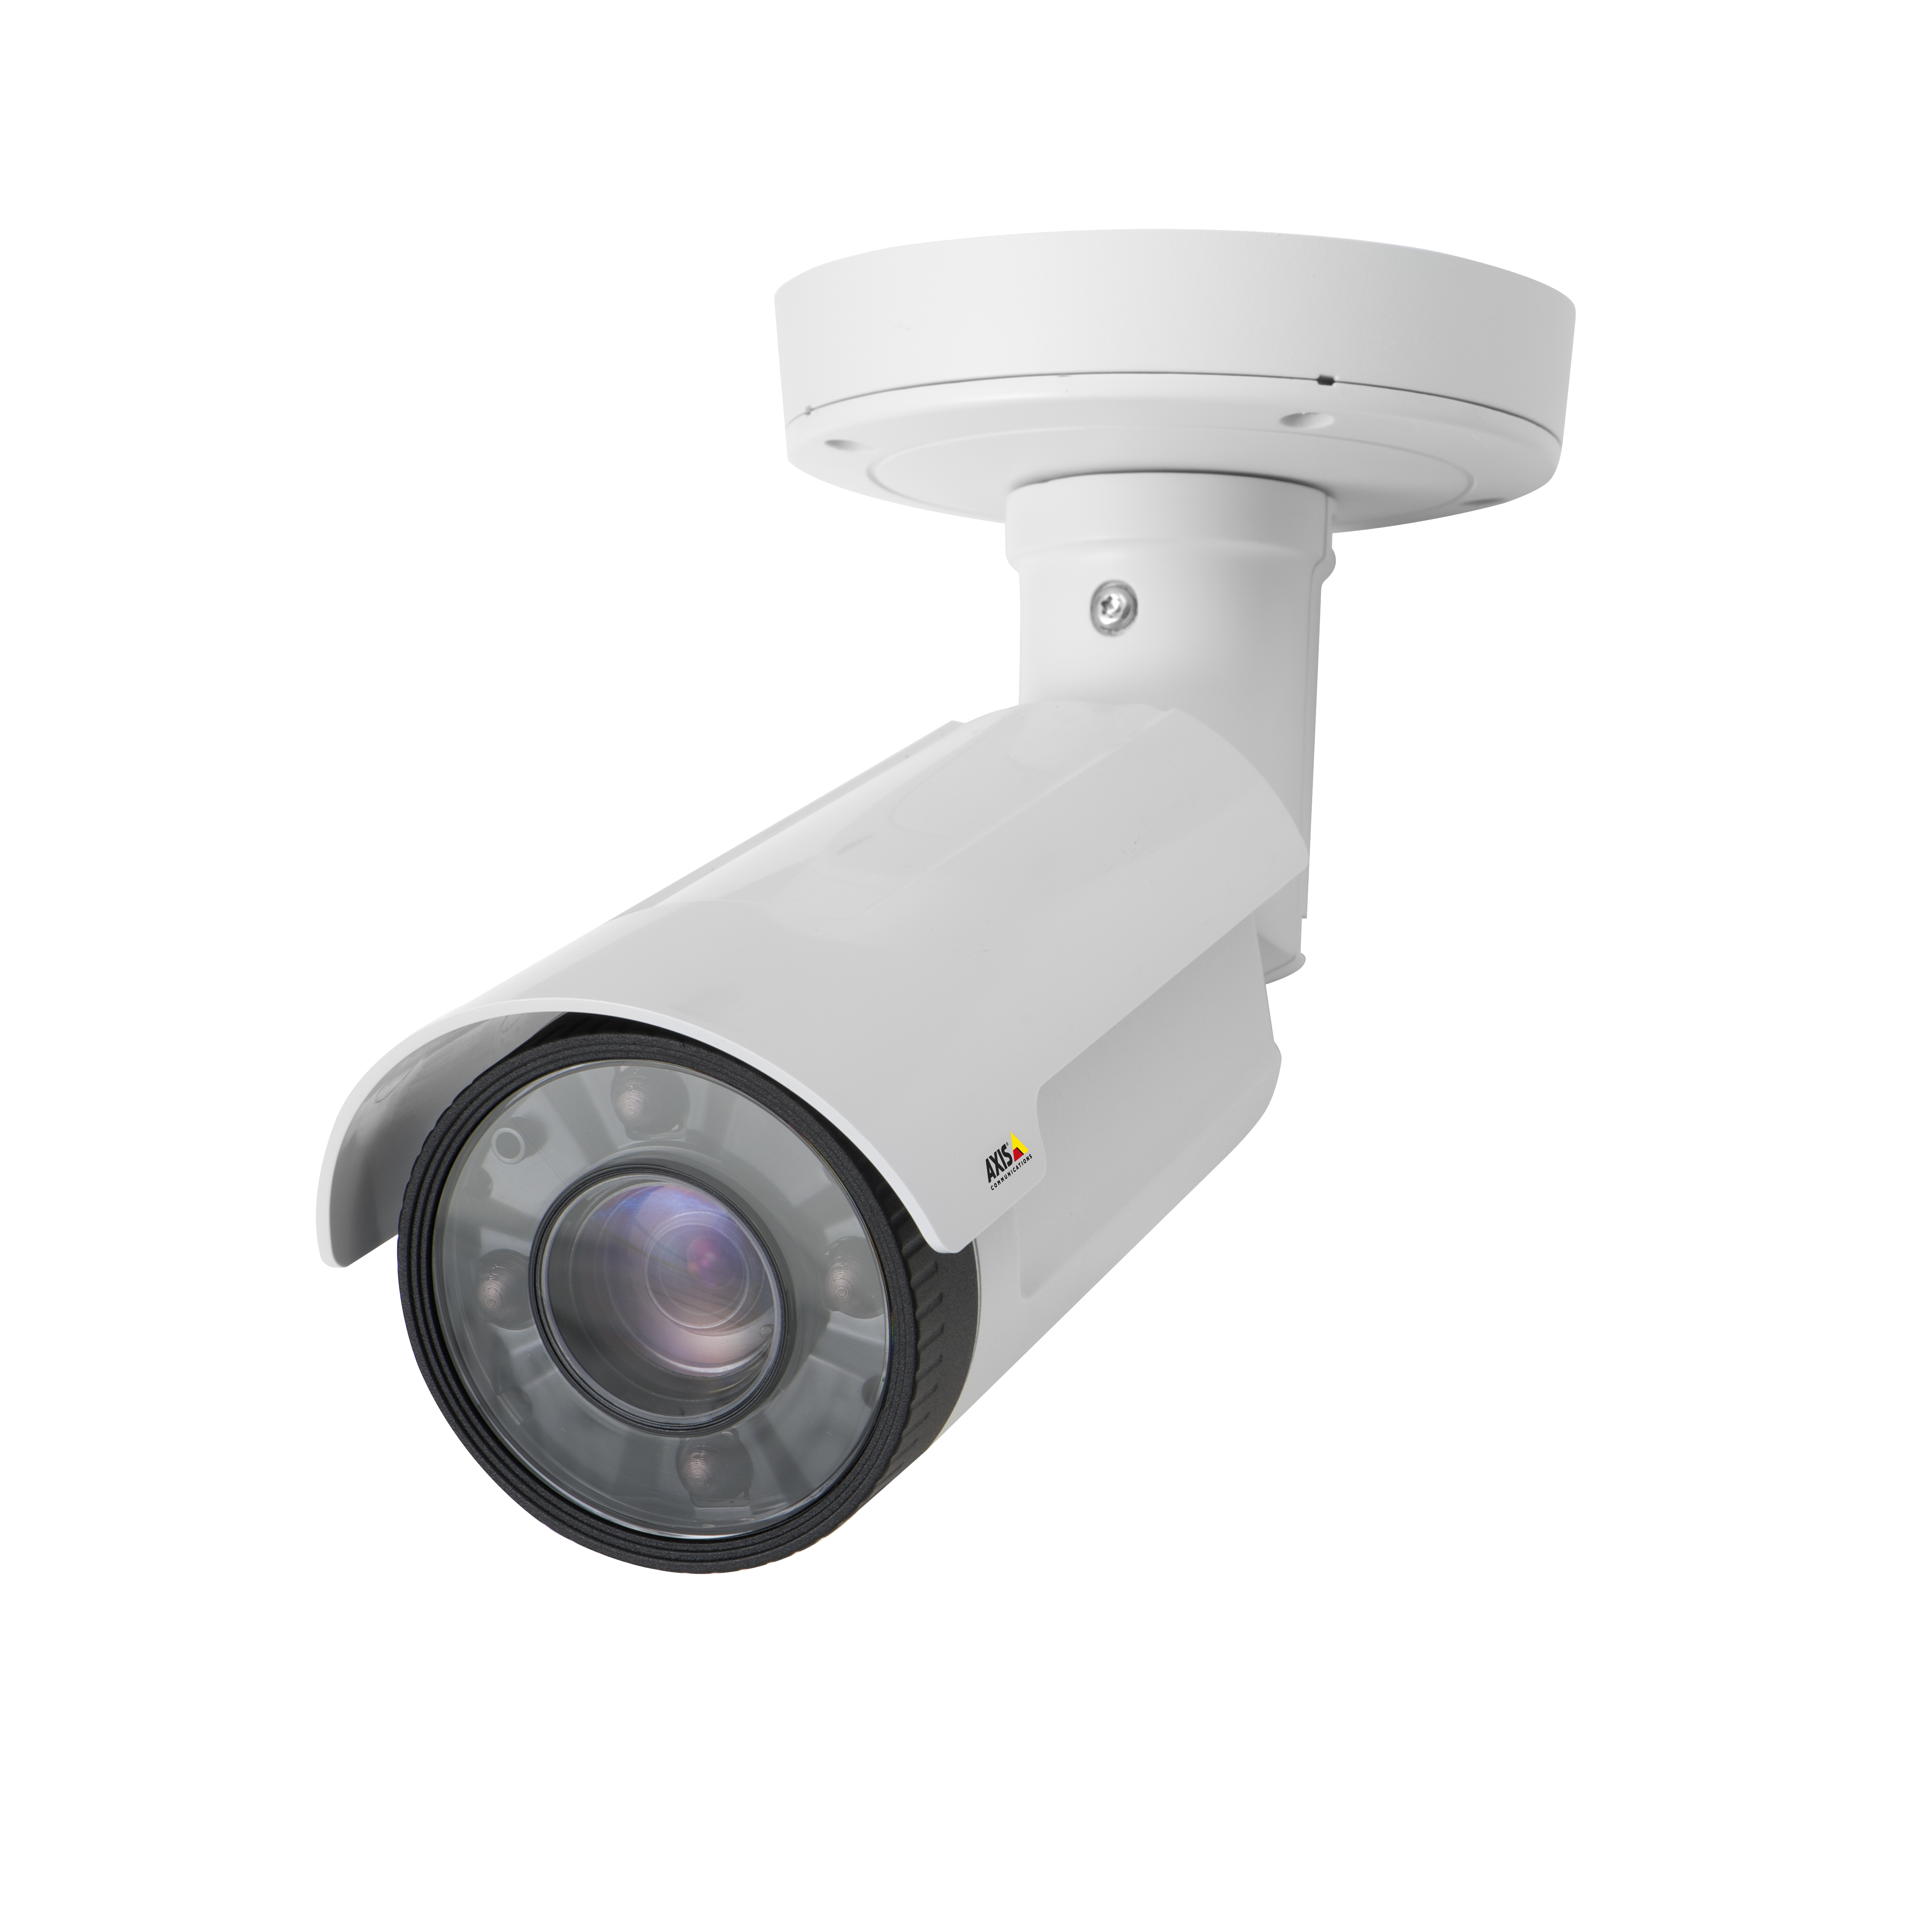 AXIS Q1765-LE Network Security Camera